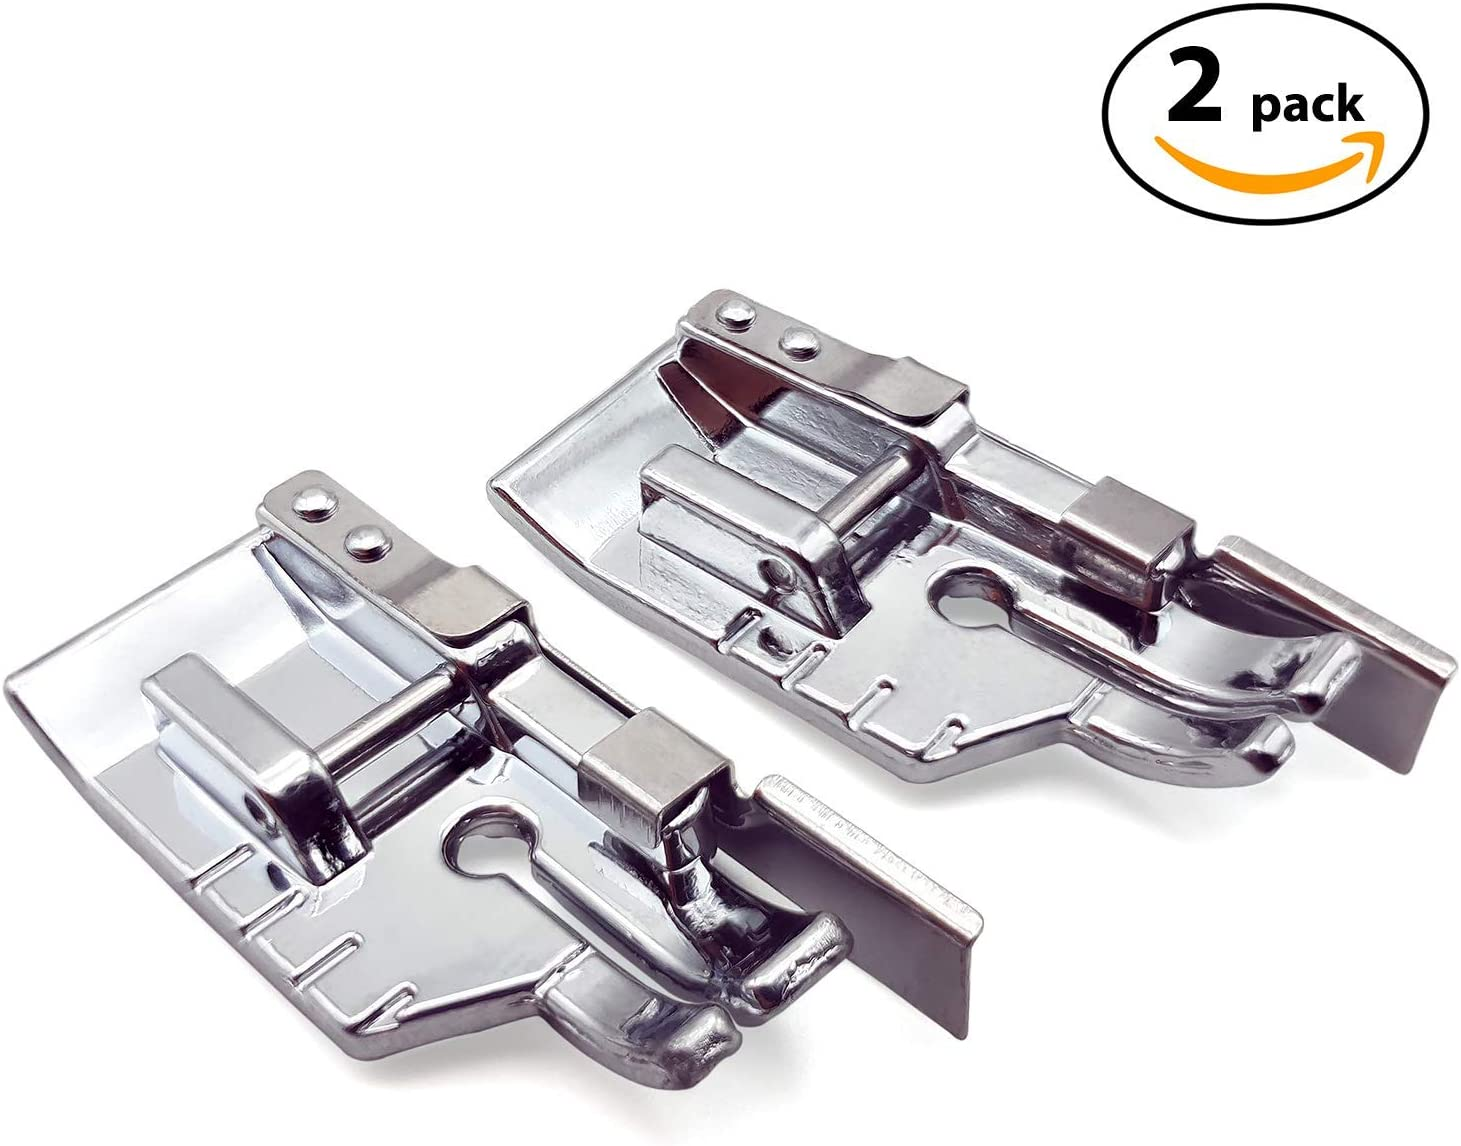 2PCS Border Guide Sewing Machine Presser Foot for All Low Shank Snap-On 15 Class Machines Addicted DEPO